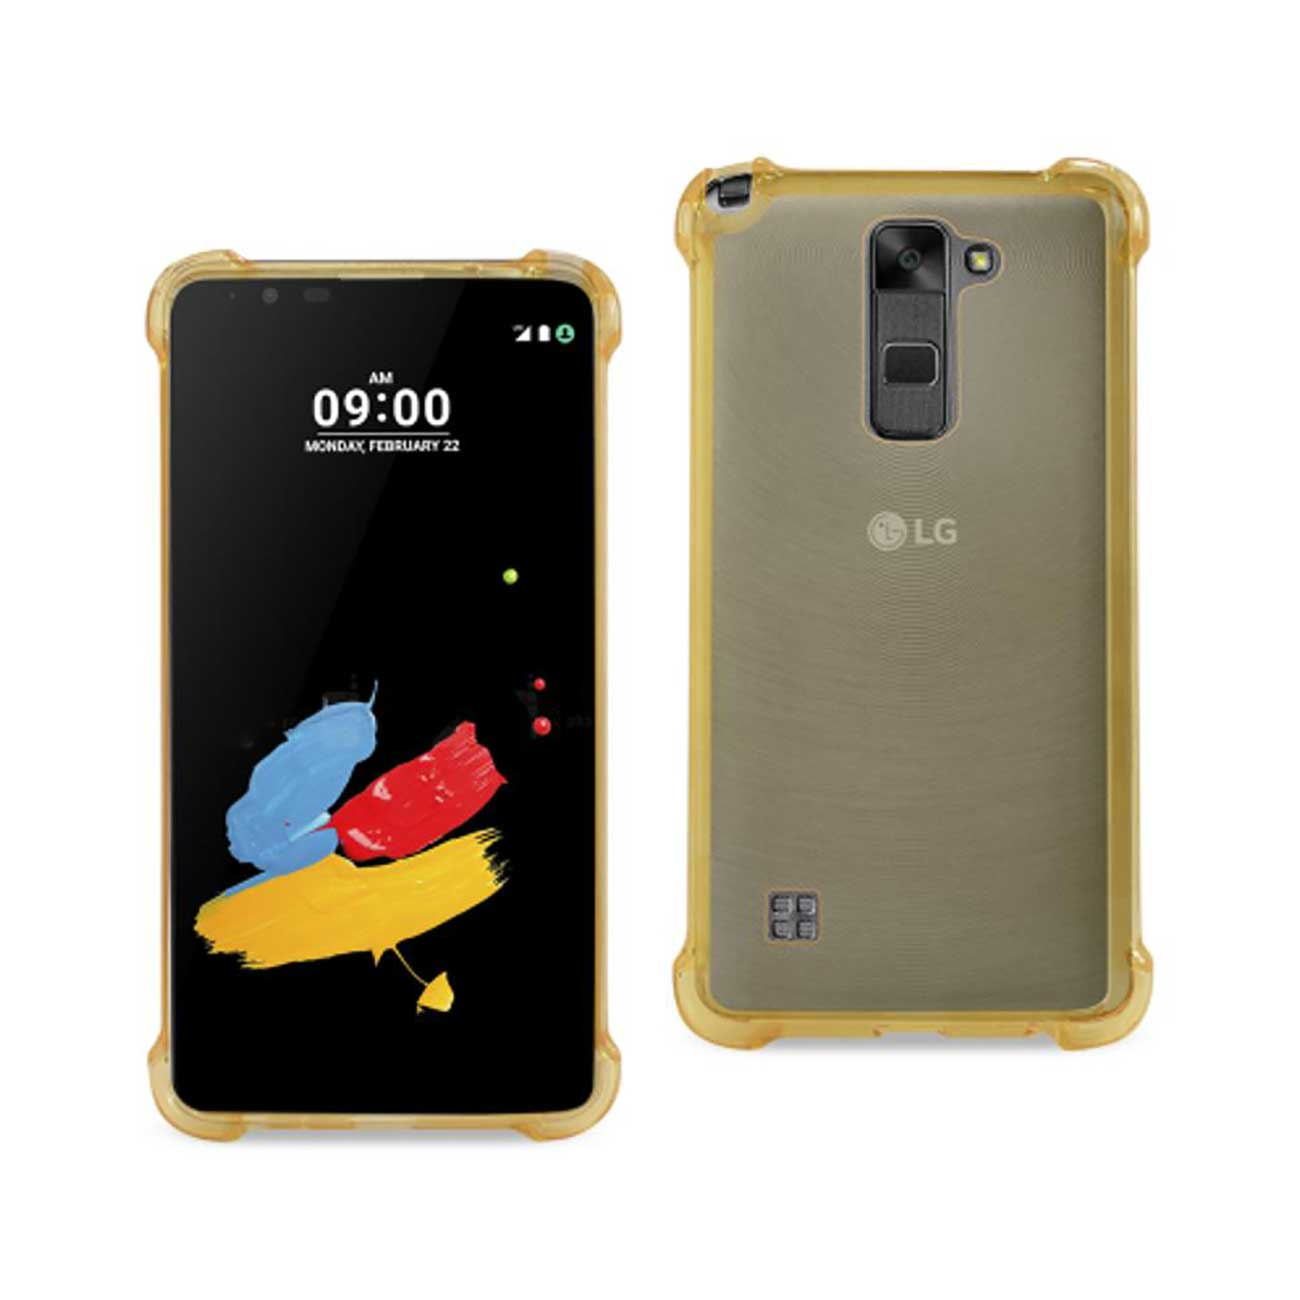 LG STYLUS 2 MIRROR EFFECT CASE WITH AIR CUSHION PROTECTION IN CLEAR GOLD